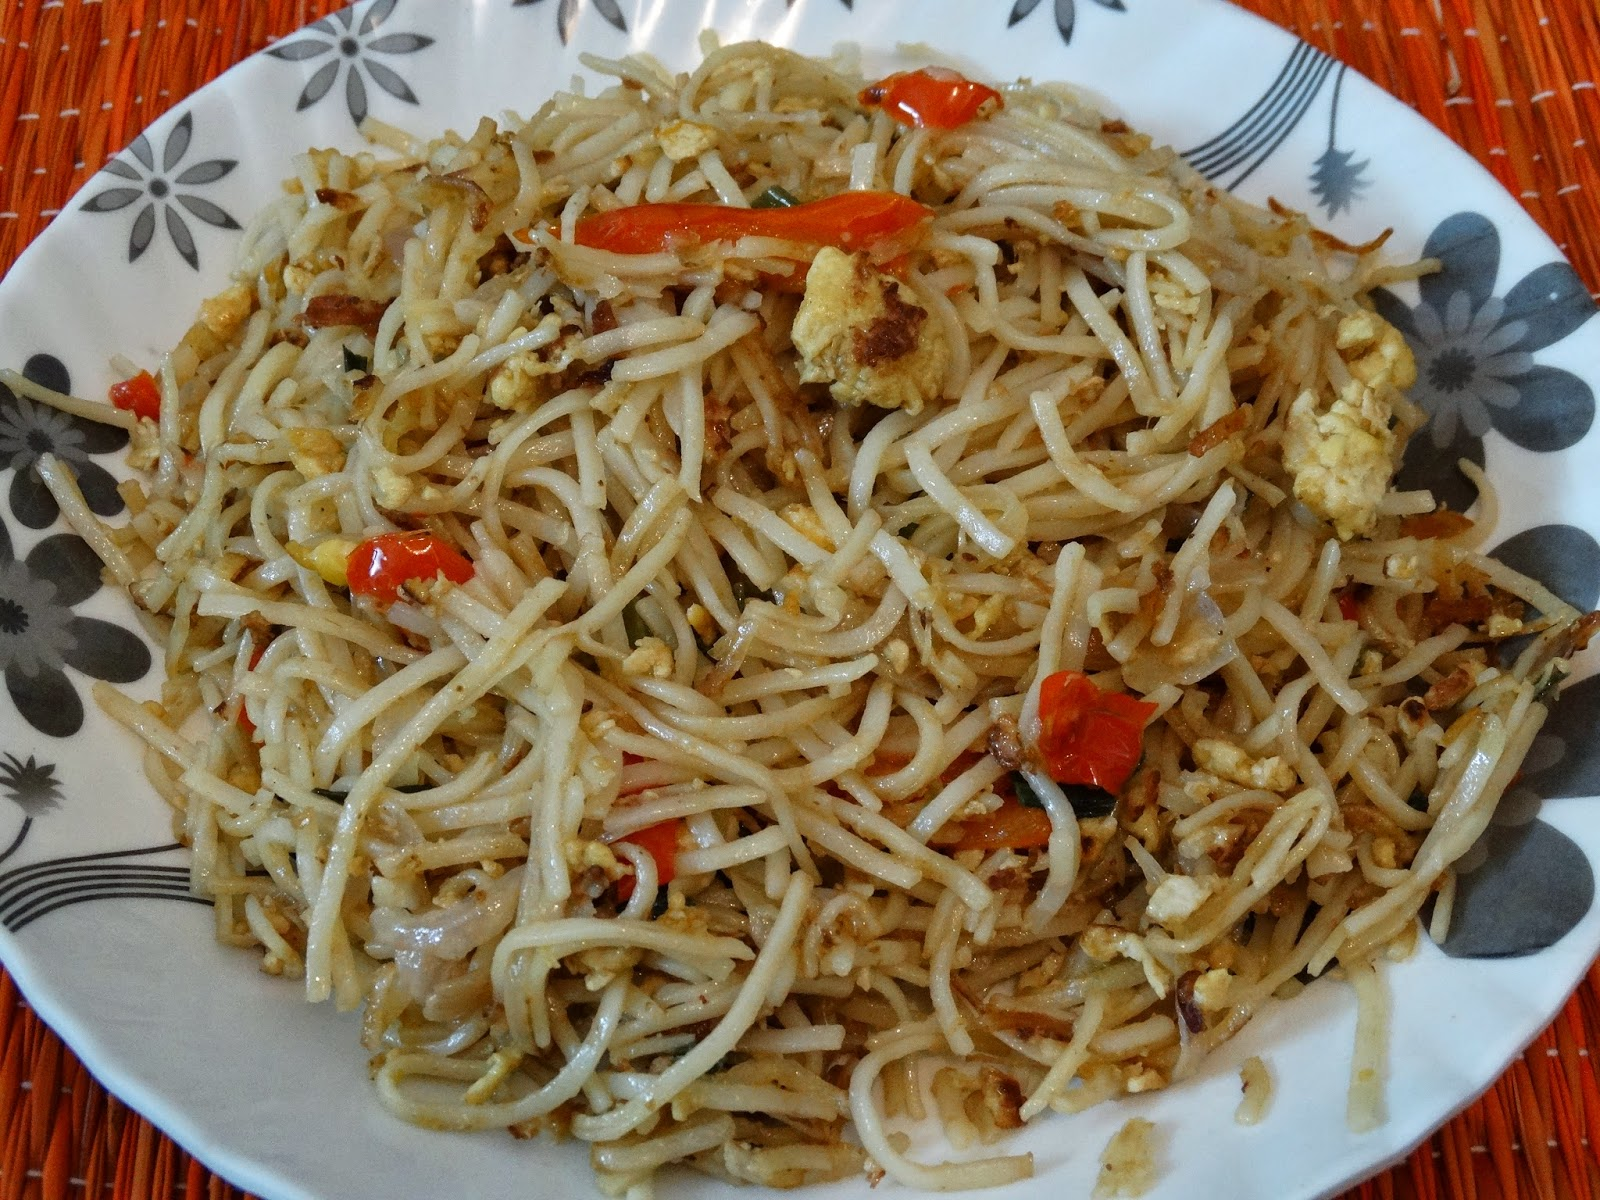 Cooking is therapeuticgo ahead and indulge rainingfood here are the ingredients for chinese egg hakka noodles serves 2 forumfinder Images